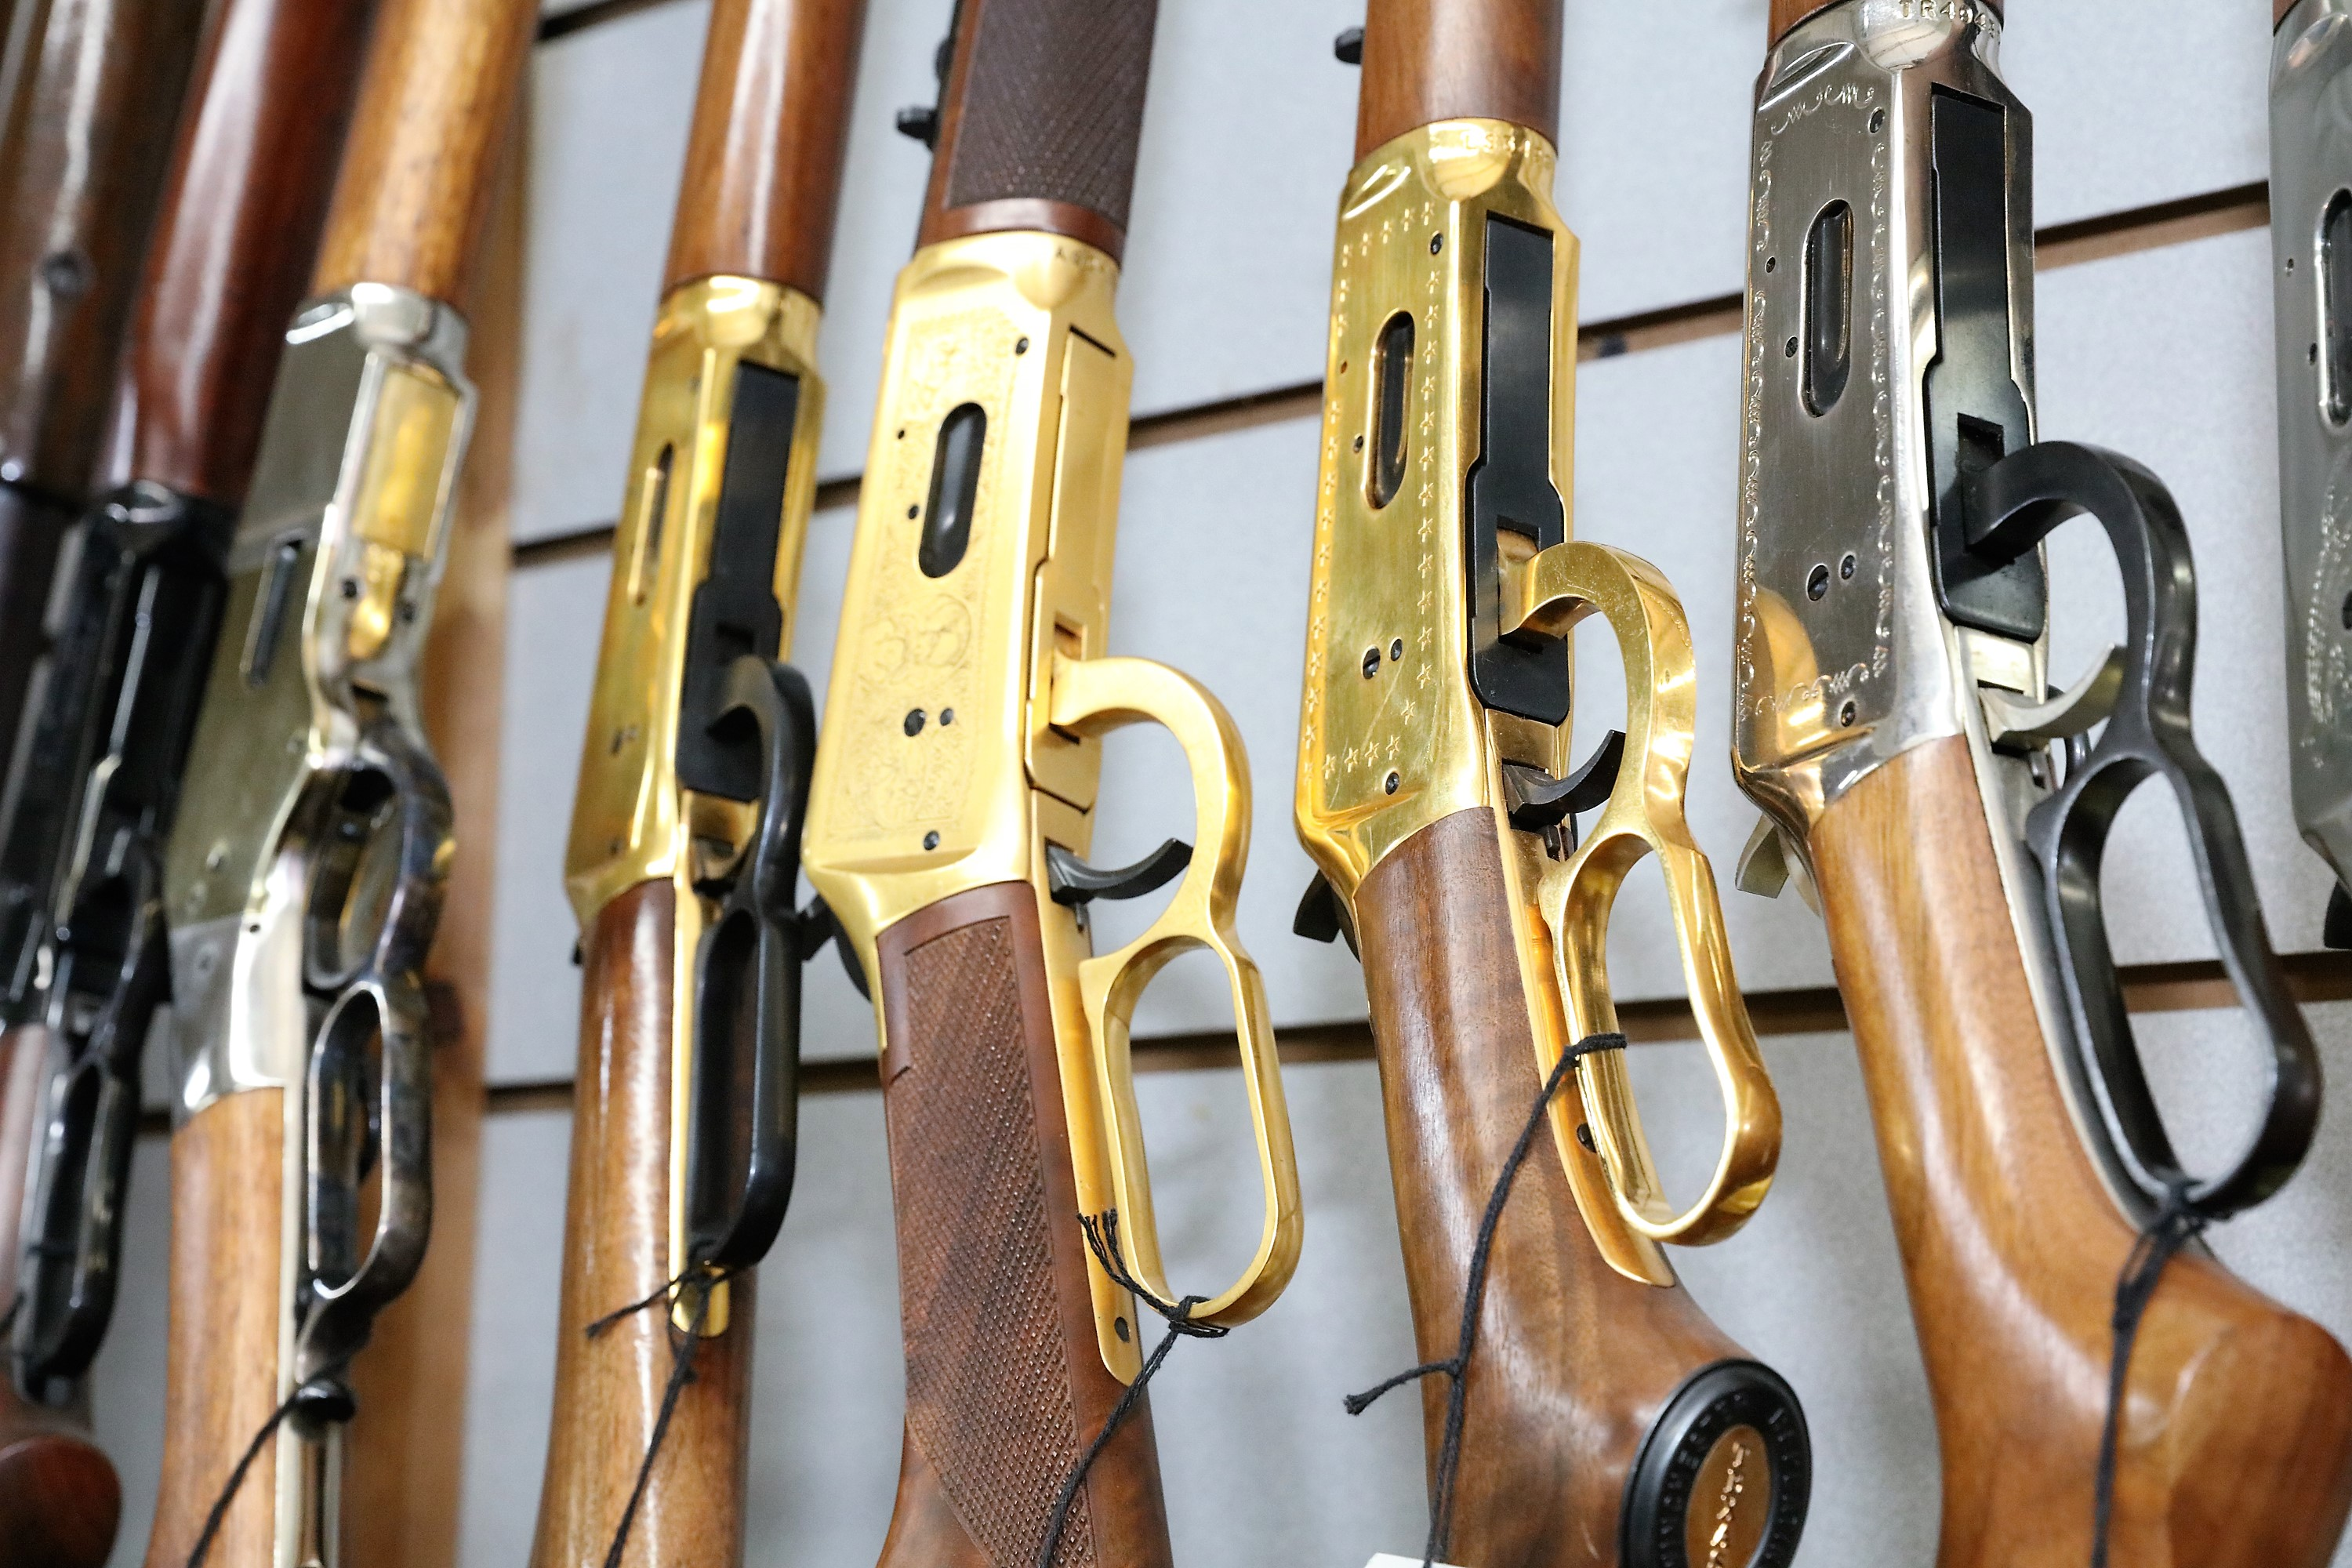 New Firearm Laws Benefit Firearms Industry...the Data Speaks